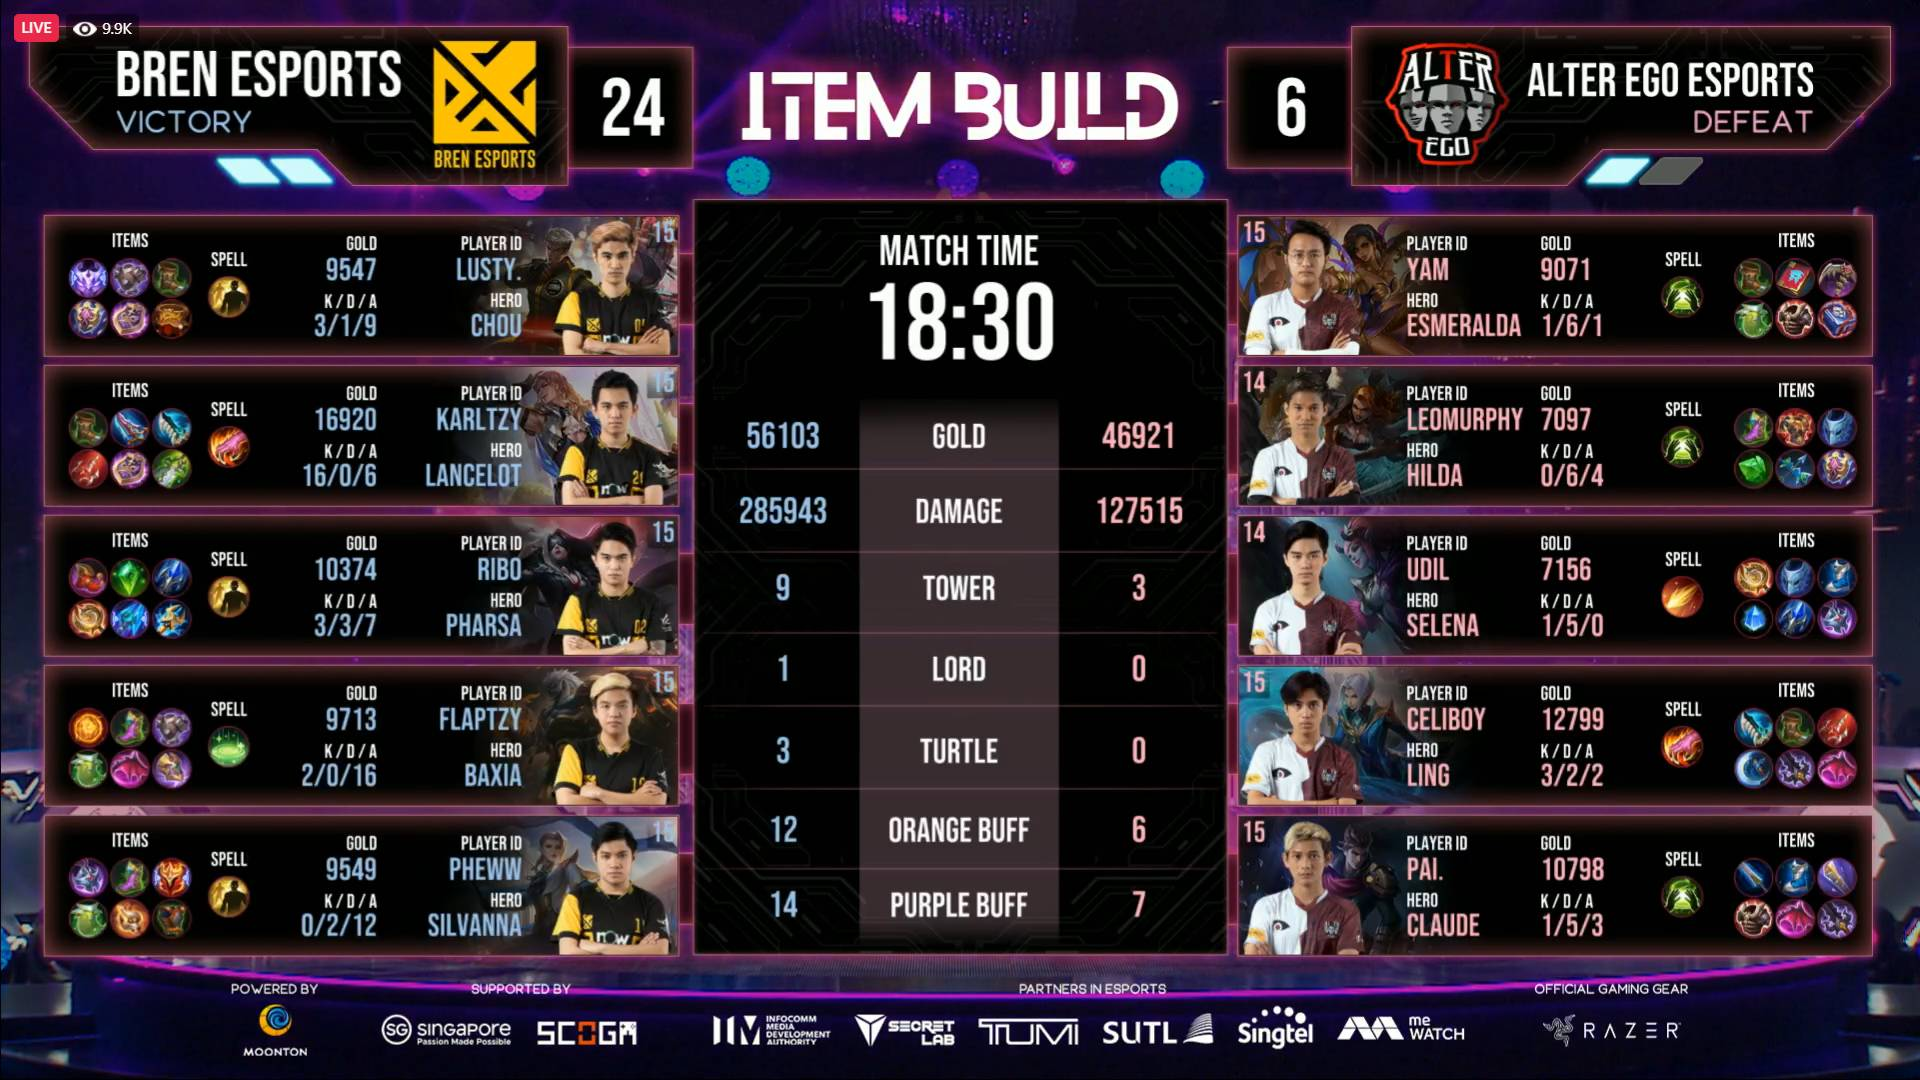 2021-M2-World-Championship-BREN-def-Alter-Ego-2-Game-Three KarlTzy boots out Alter Ego, lifts BREN Esports to M2 Lower Bracket Finals ESports Mobile Legends MPL-PH News  - philippine sports news